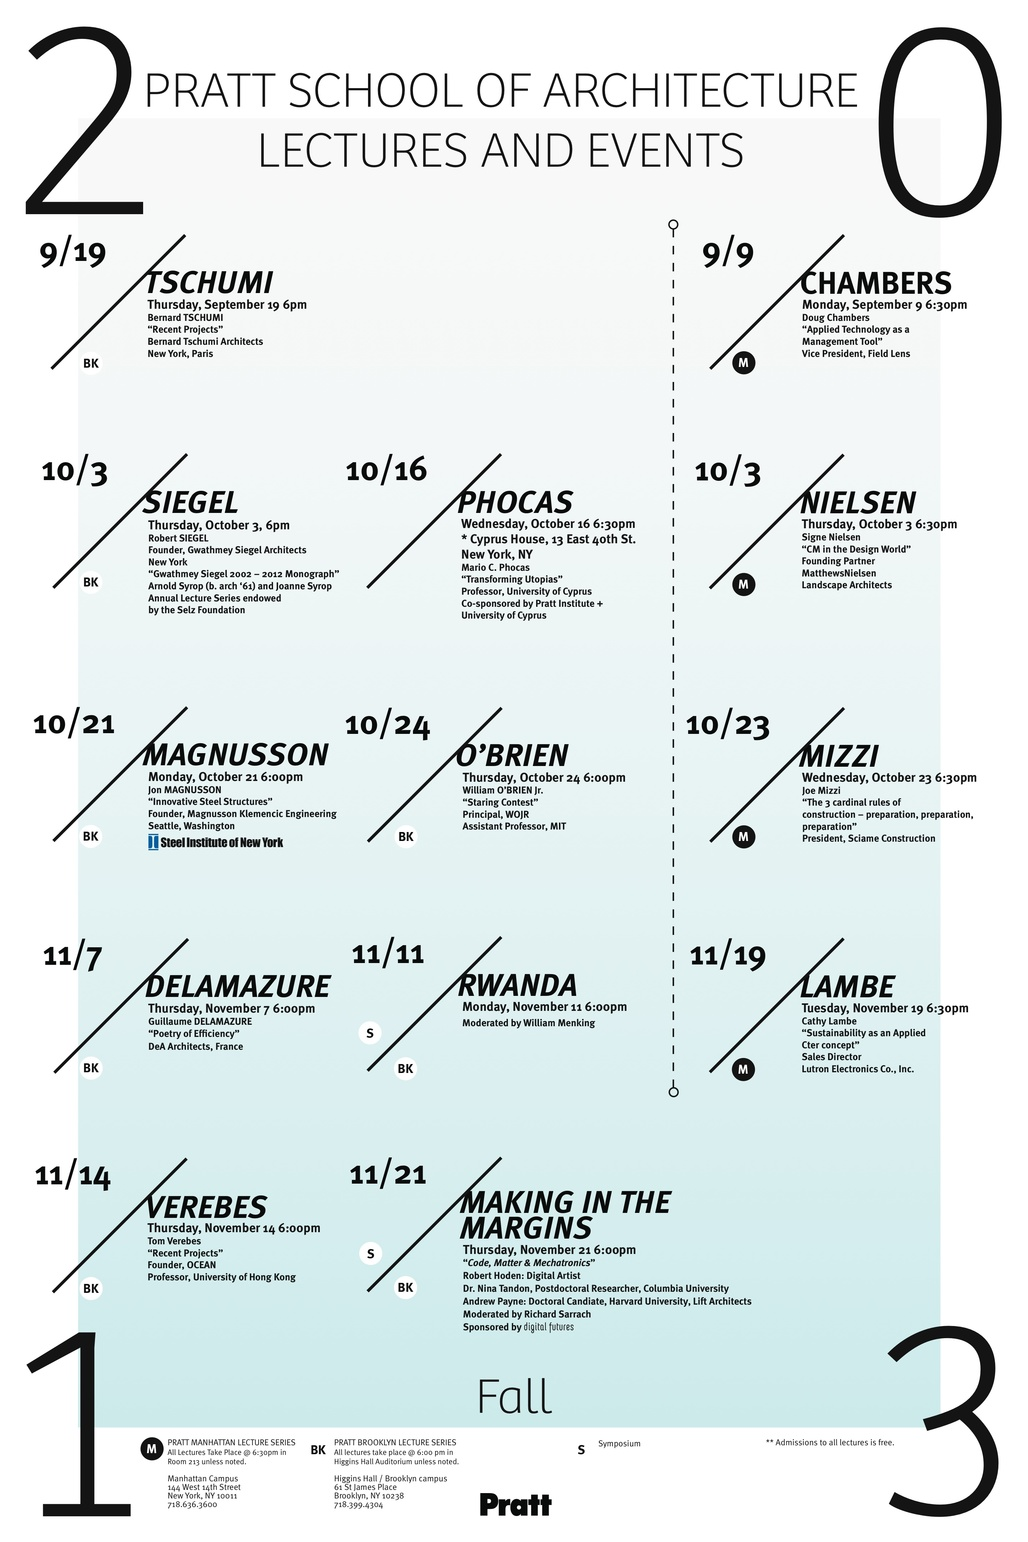 Poster for the Fall 13 lecture events at the Pratt Institute School of Architecture. Image courtesy of Pratt Institute.